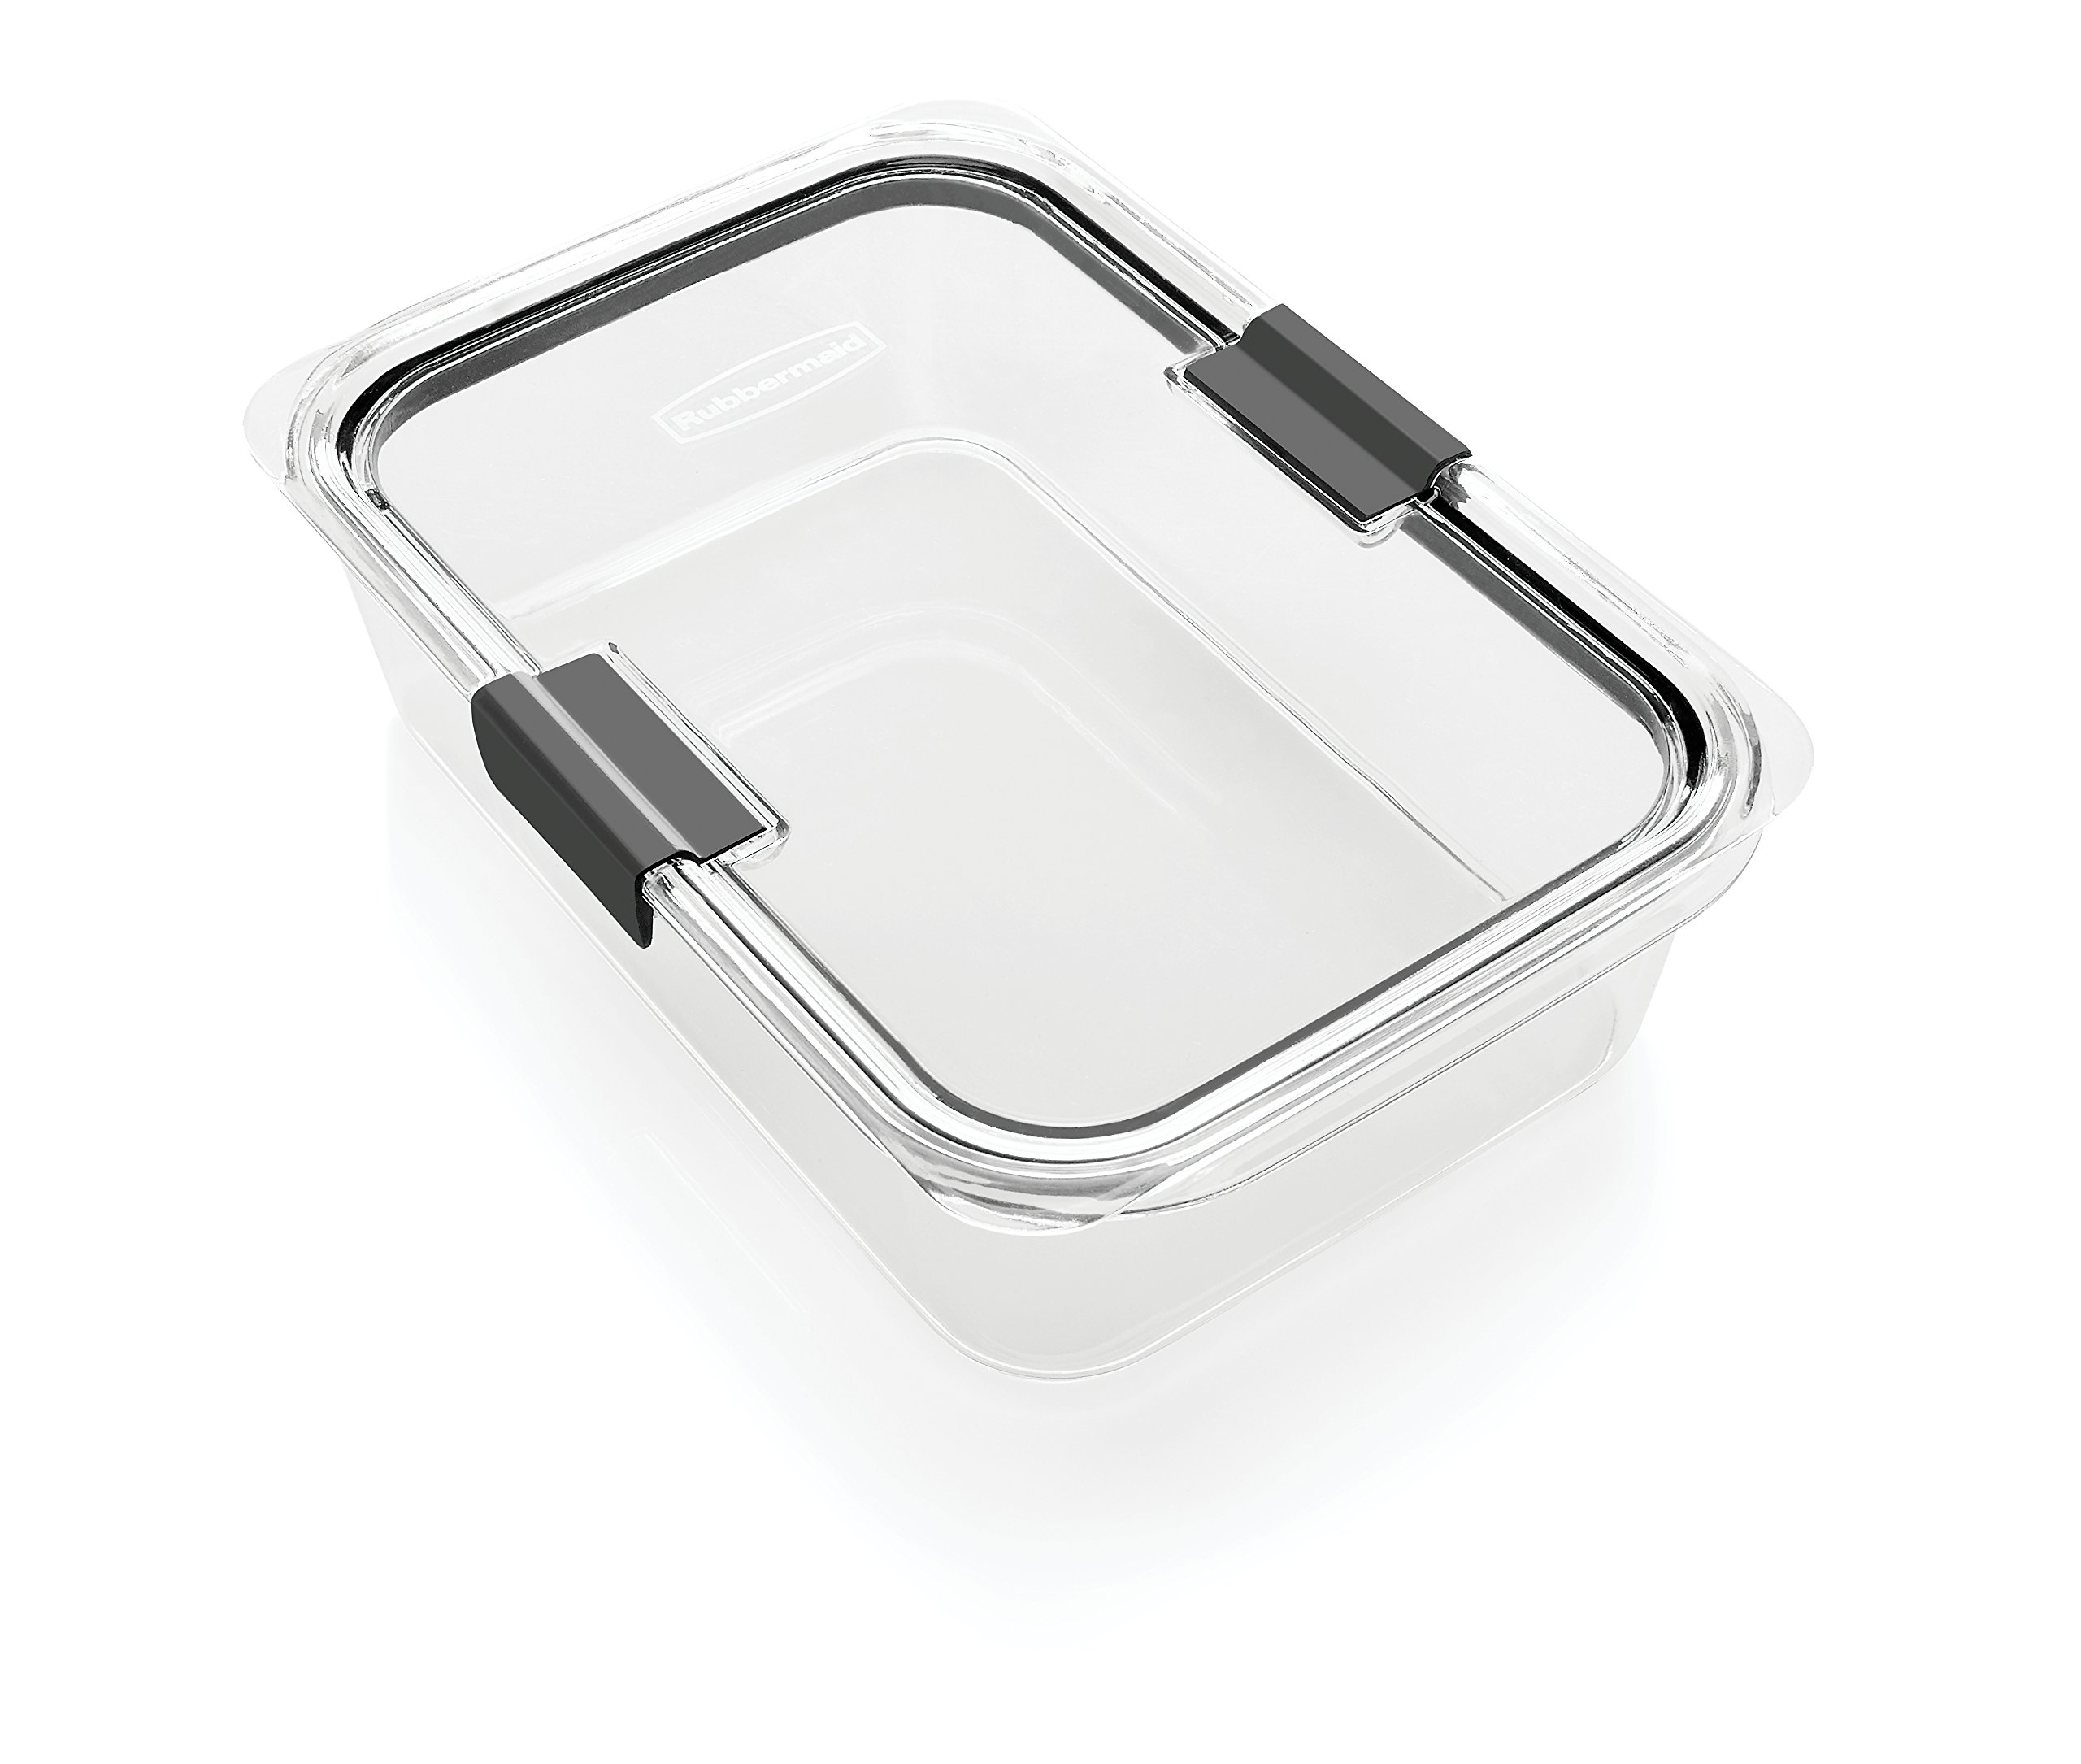 Rubbermaid Brilliance Storage Container 1991158